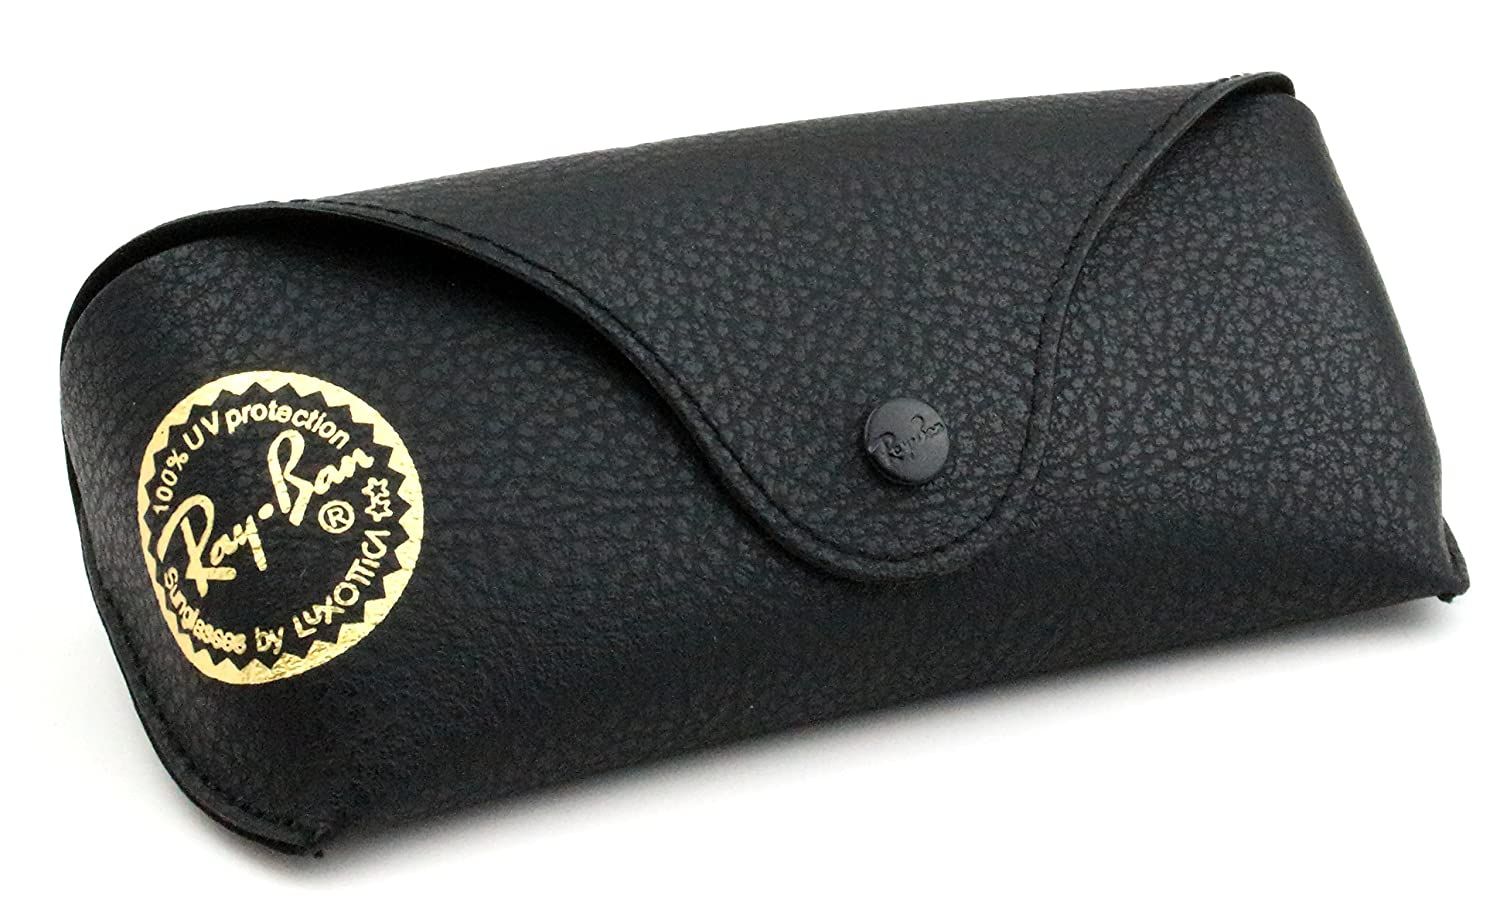 ray ban folding wayfarer 7nq3  ray ban soft pu black leather sunglass case by aec imported: amazon